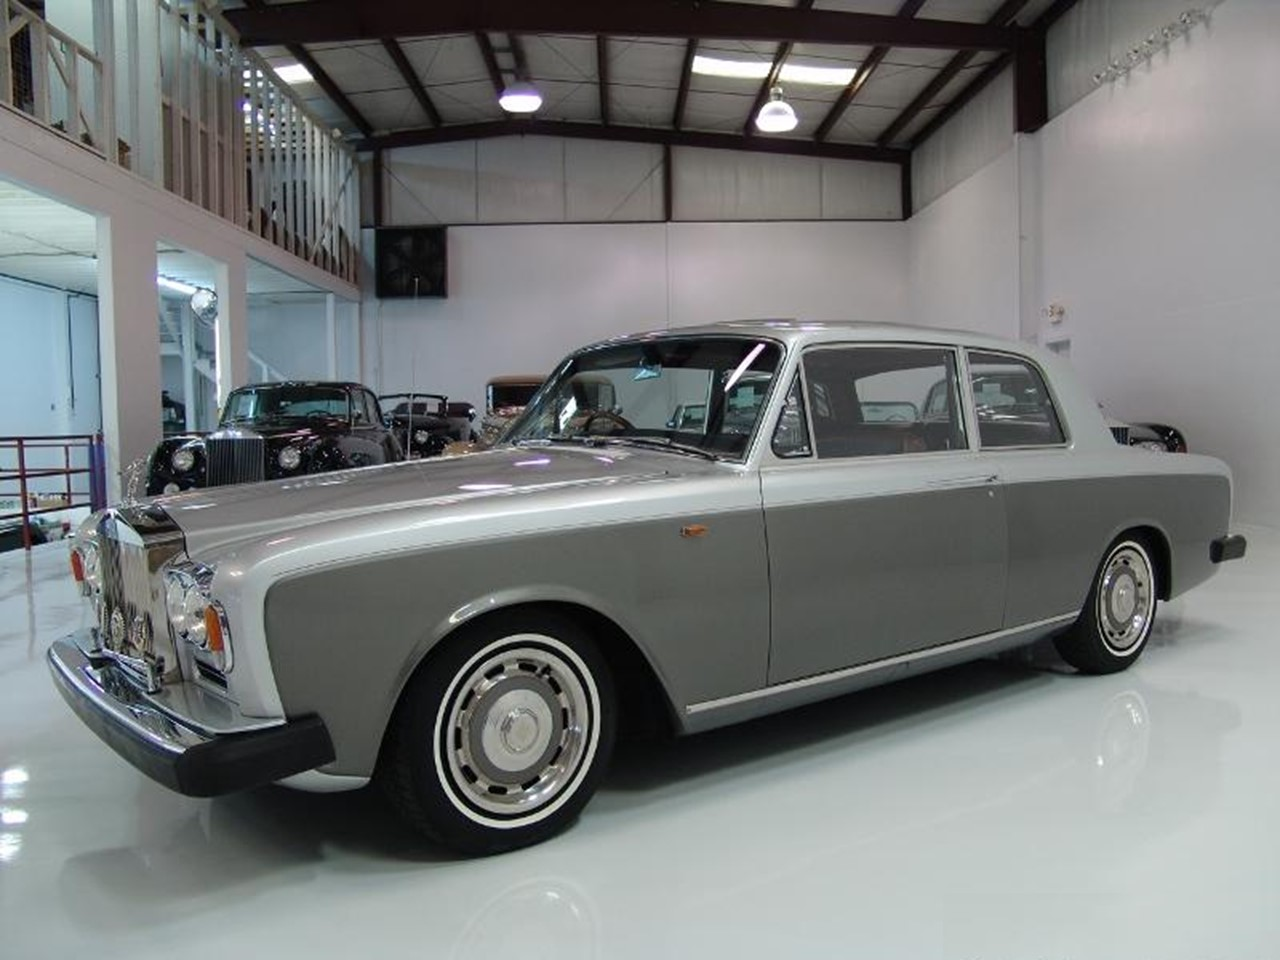 hight resolution of rolls royce notoriousluxury 1966 silver shadow james young 1 w 450 rolls royce notoriousluxury rolls royce silver